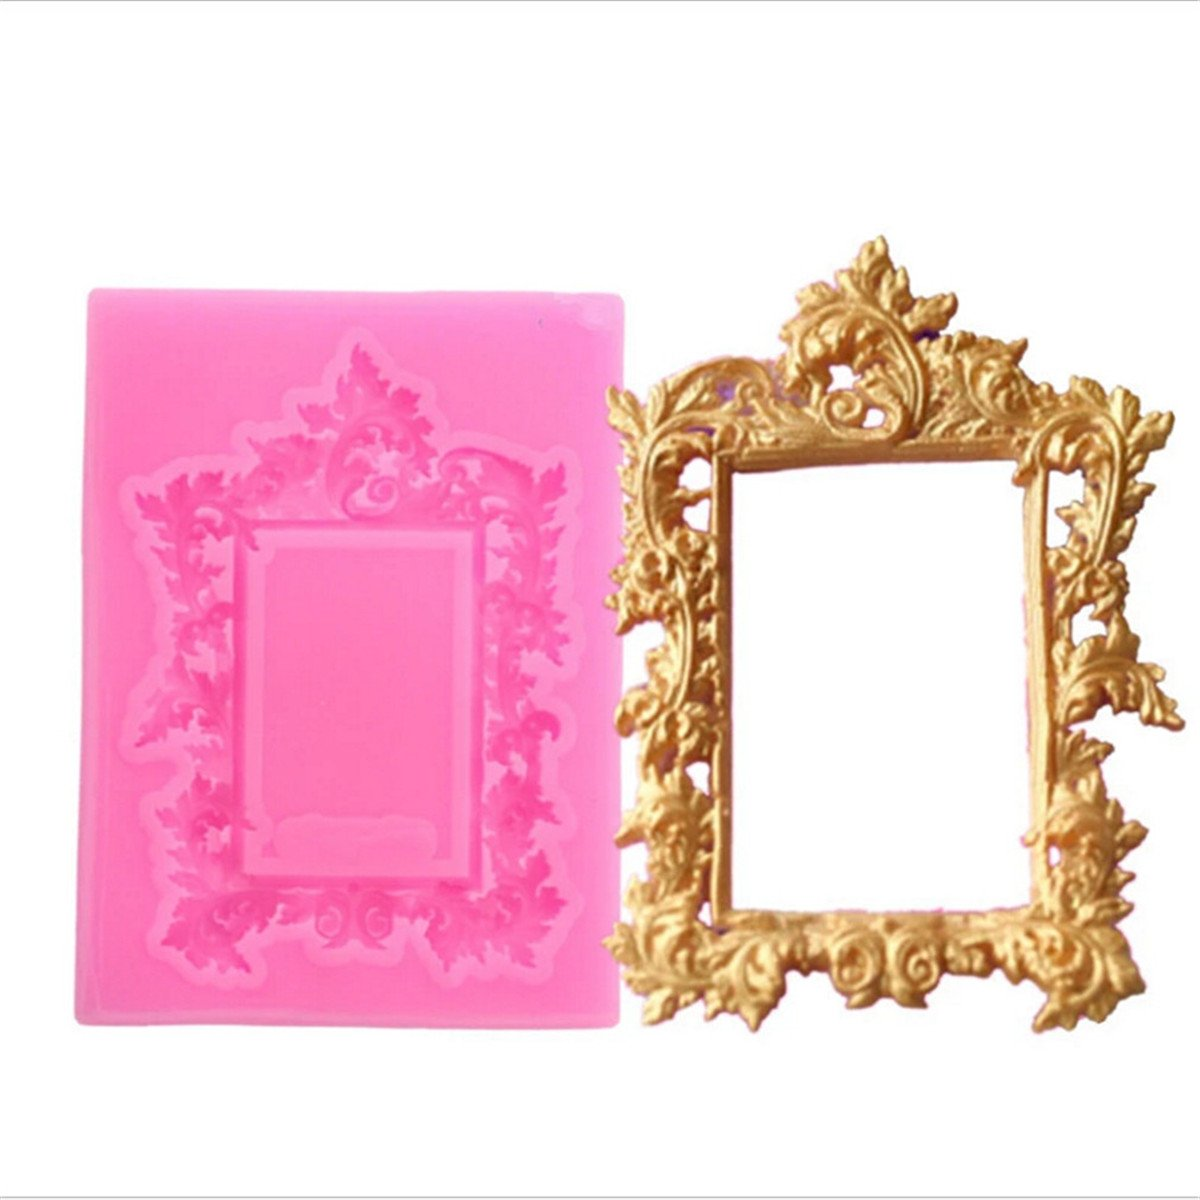 CH Pink Picture Frame Silicone Mold Fondant Mold Cake Decorating Tools Chocolate Kitchen Baking Mold